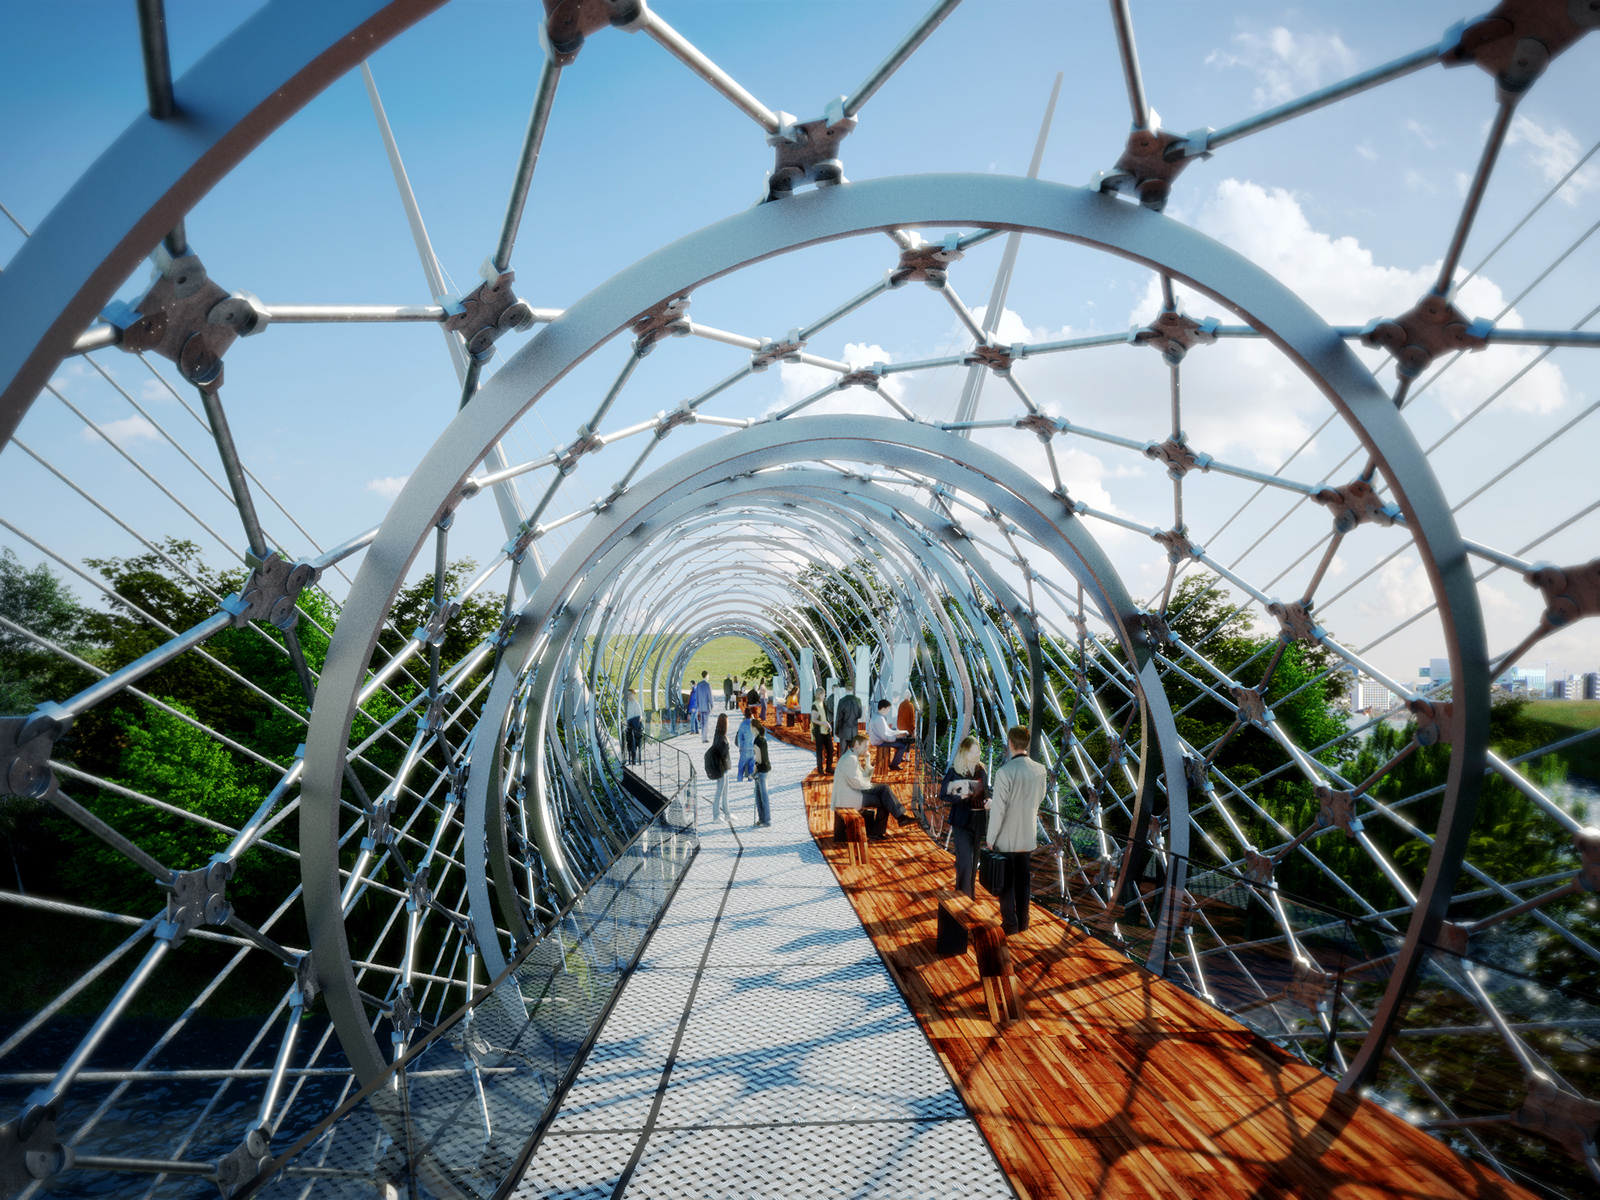 BM3 Architecture Has Submitted An International Design Competition Entry  For A Pedestrian Bridge In Salford, England Organised By The Royal  Institute Of ...